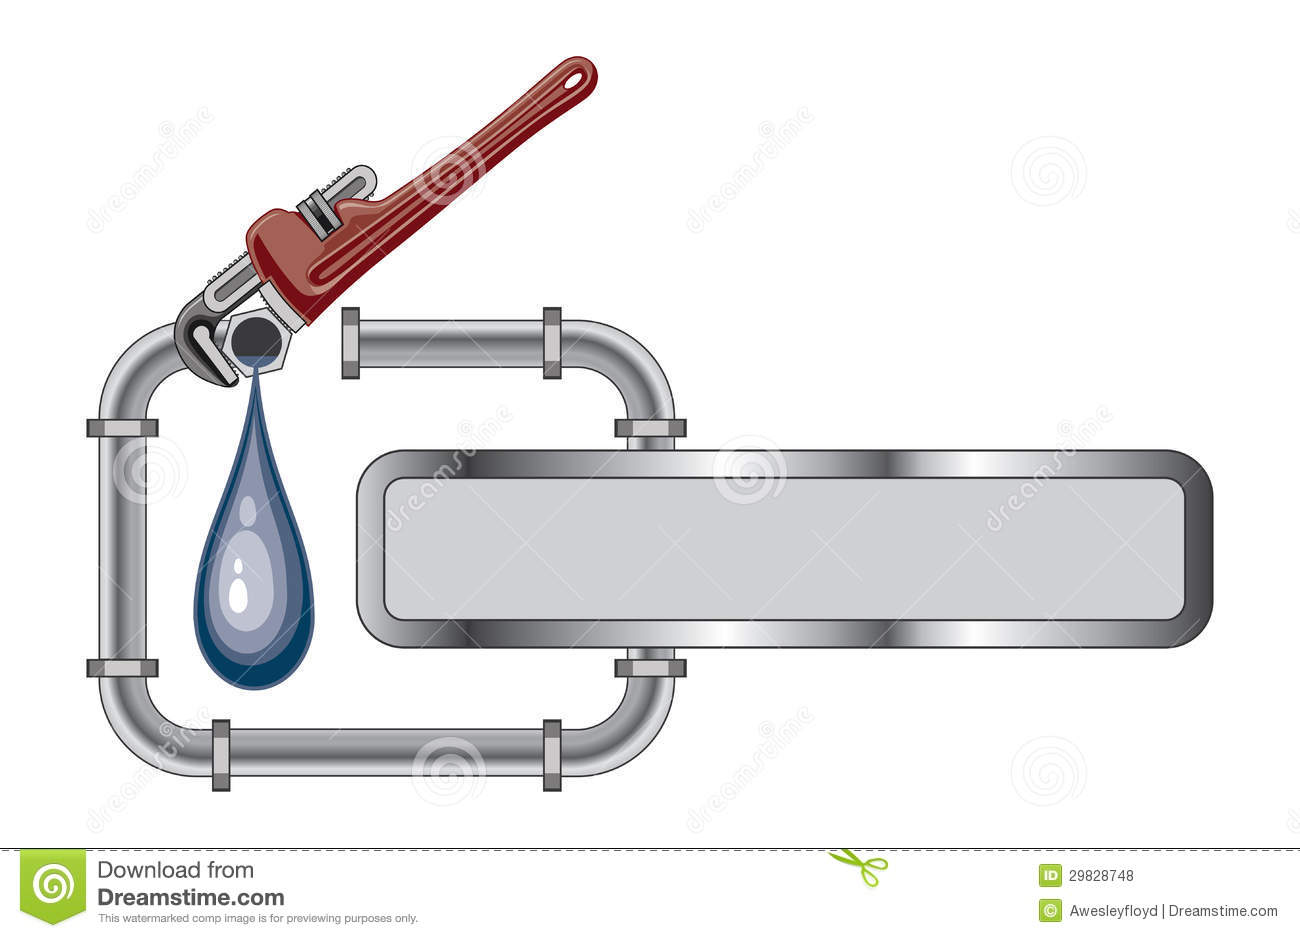 Free plumbing pipes clipart clip freeuse library Plumbing Stock Illustrations – 7,620 Plumbing Stock Illustrations ... clip freeuse library